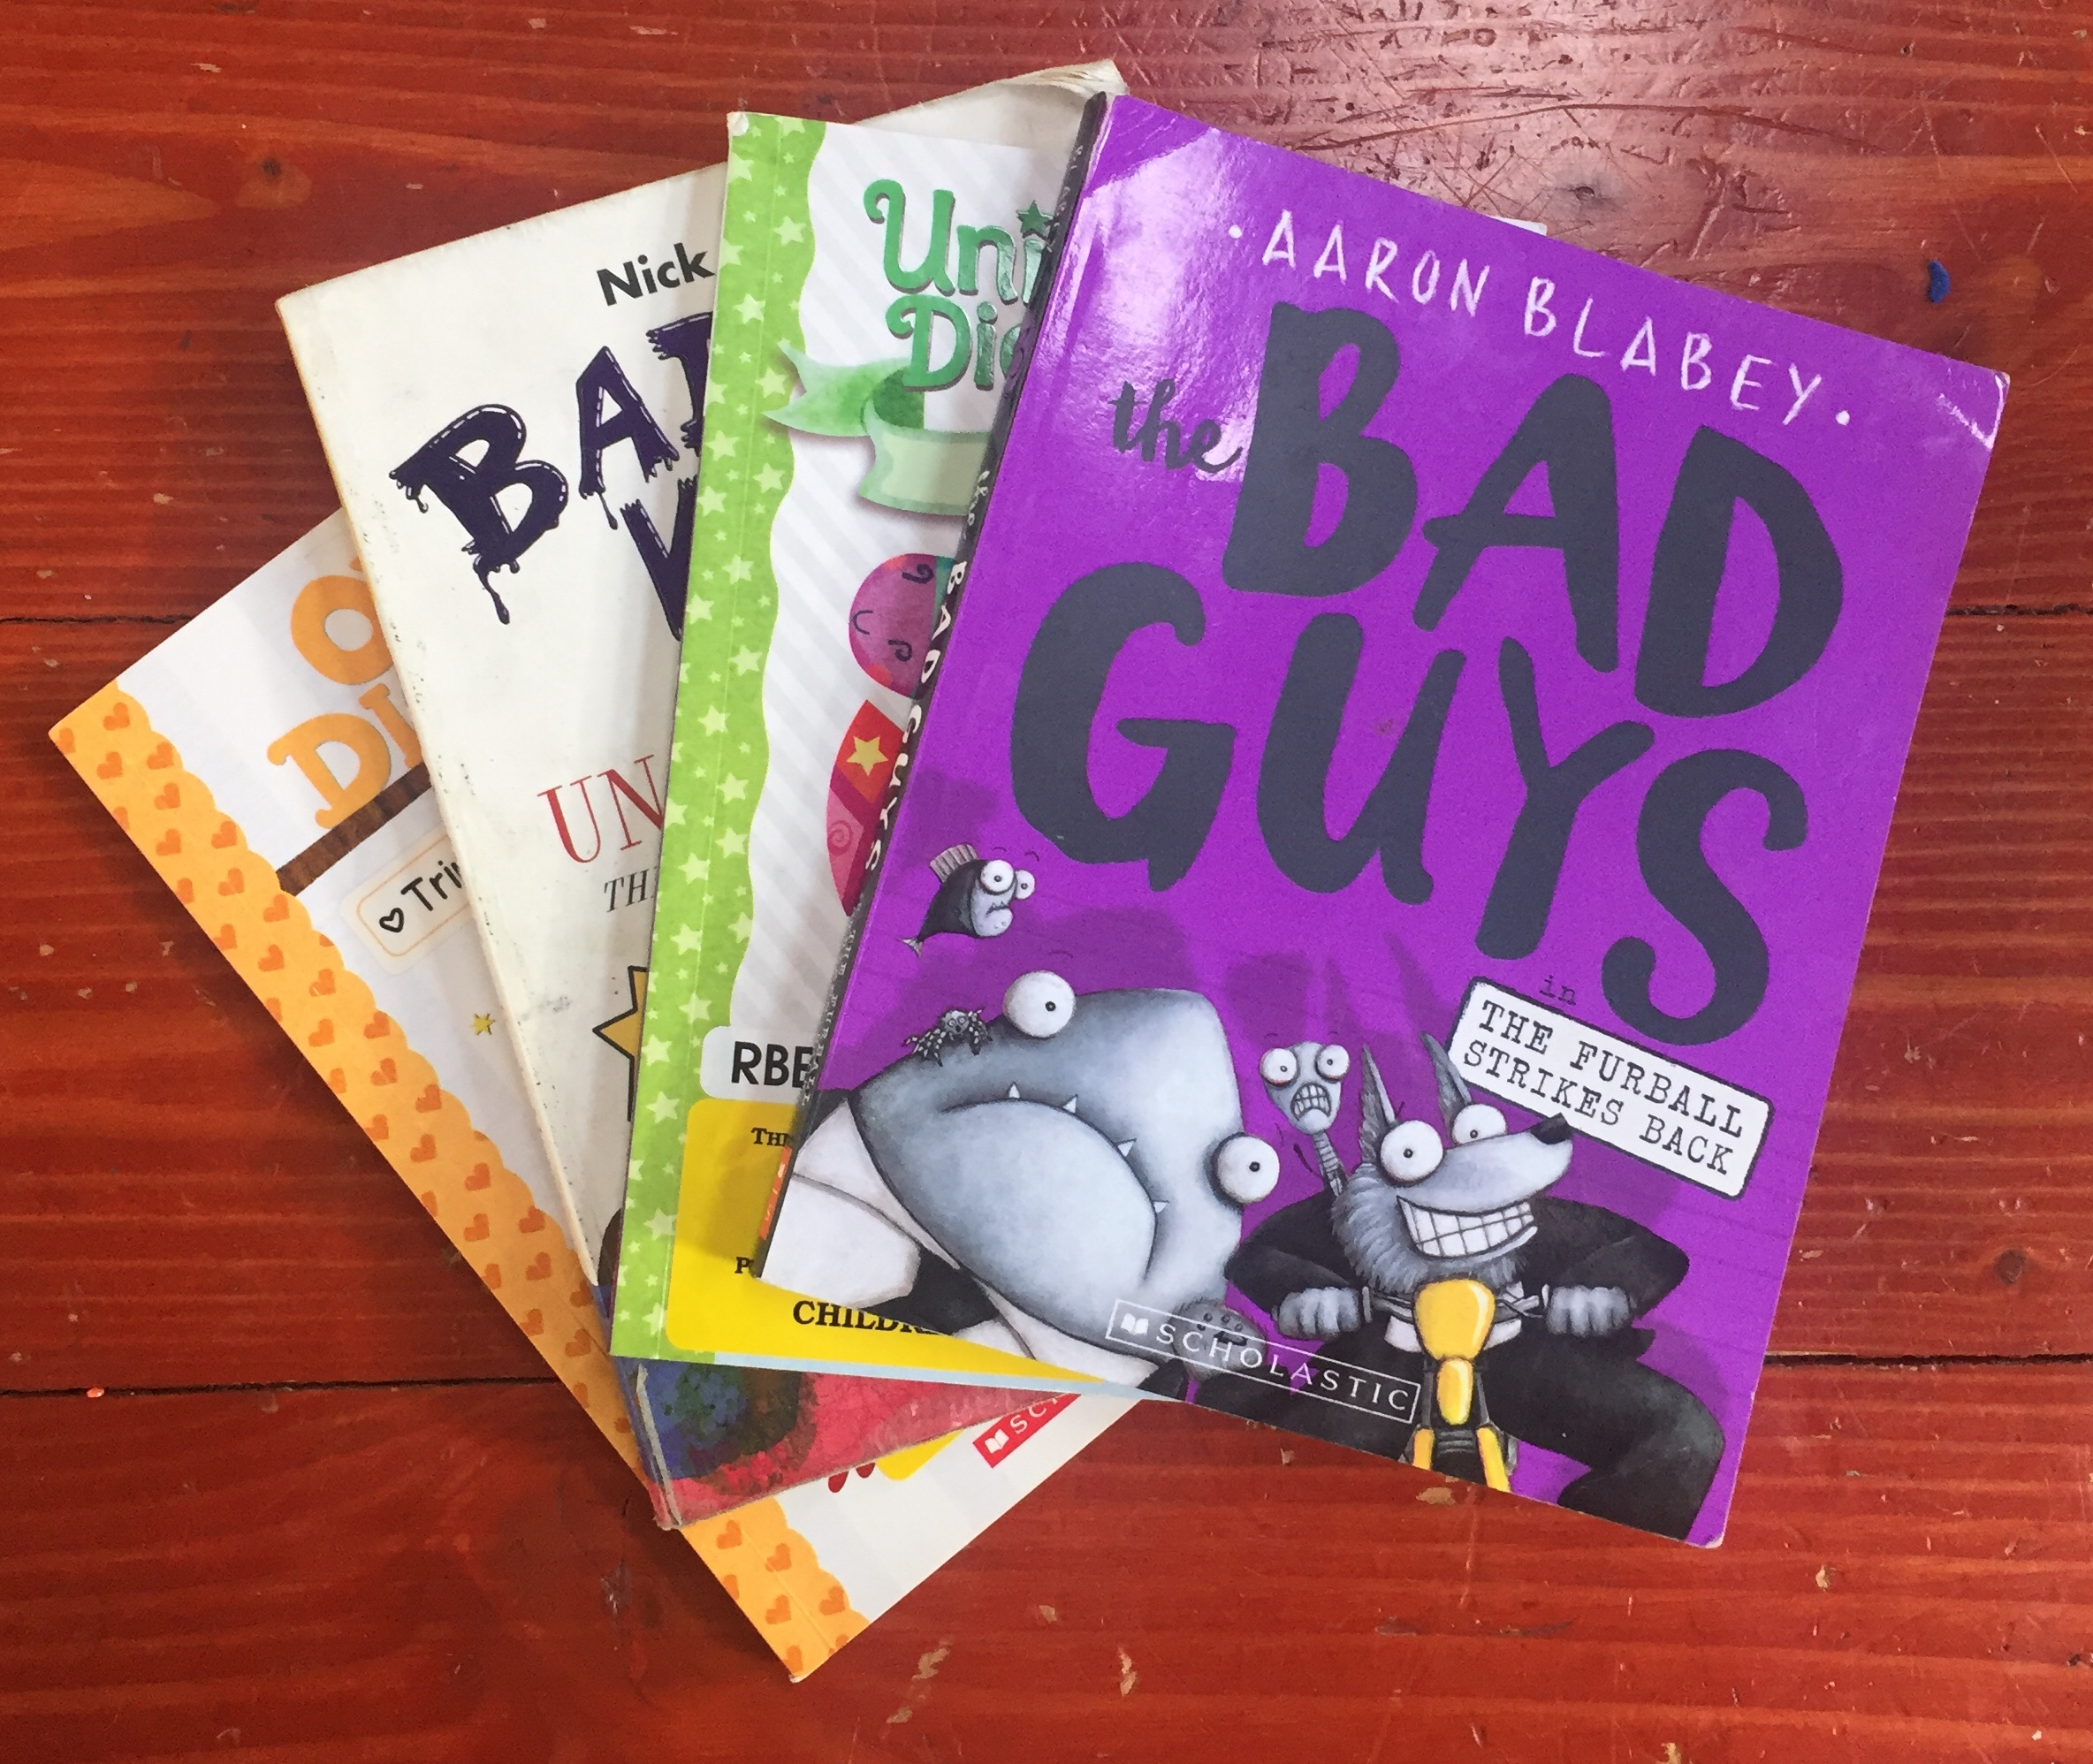 Graphic novels for young readers Bad Guys Unicorn Diaries Bad Kitty Owl Diaries in a stack